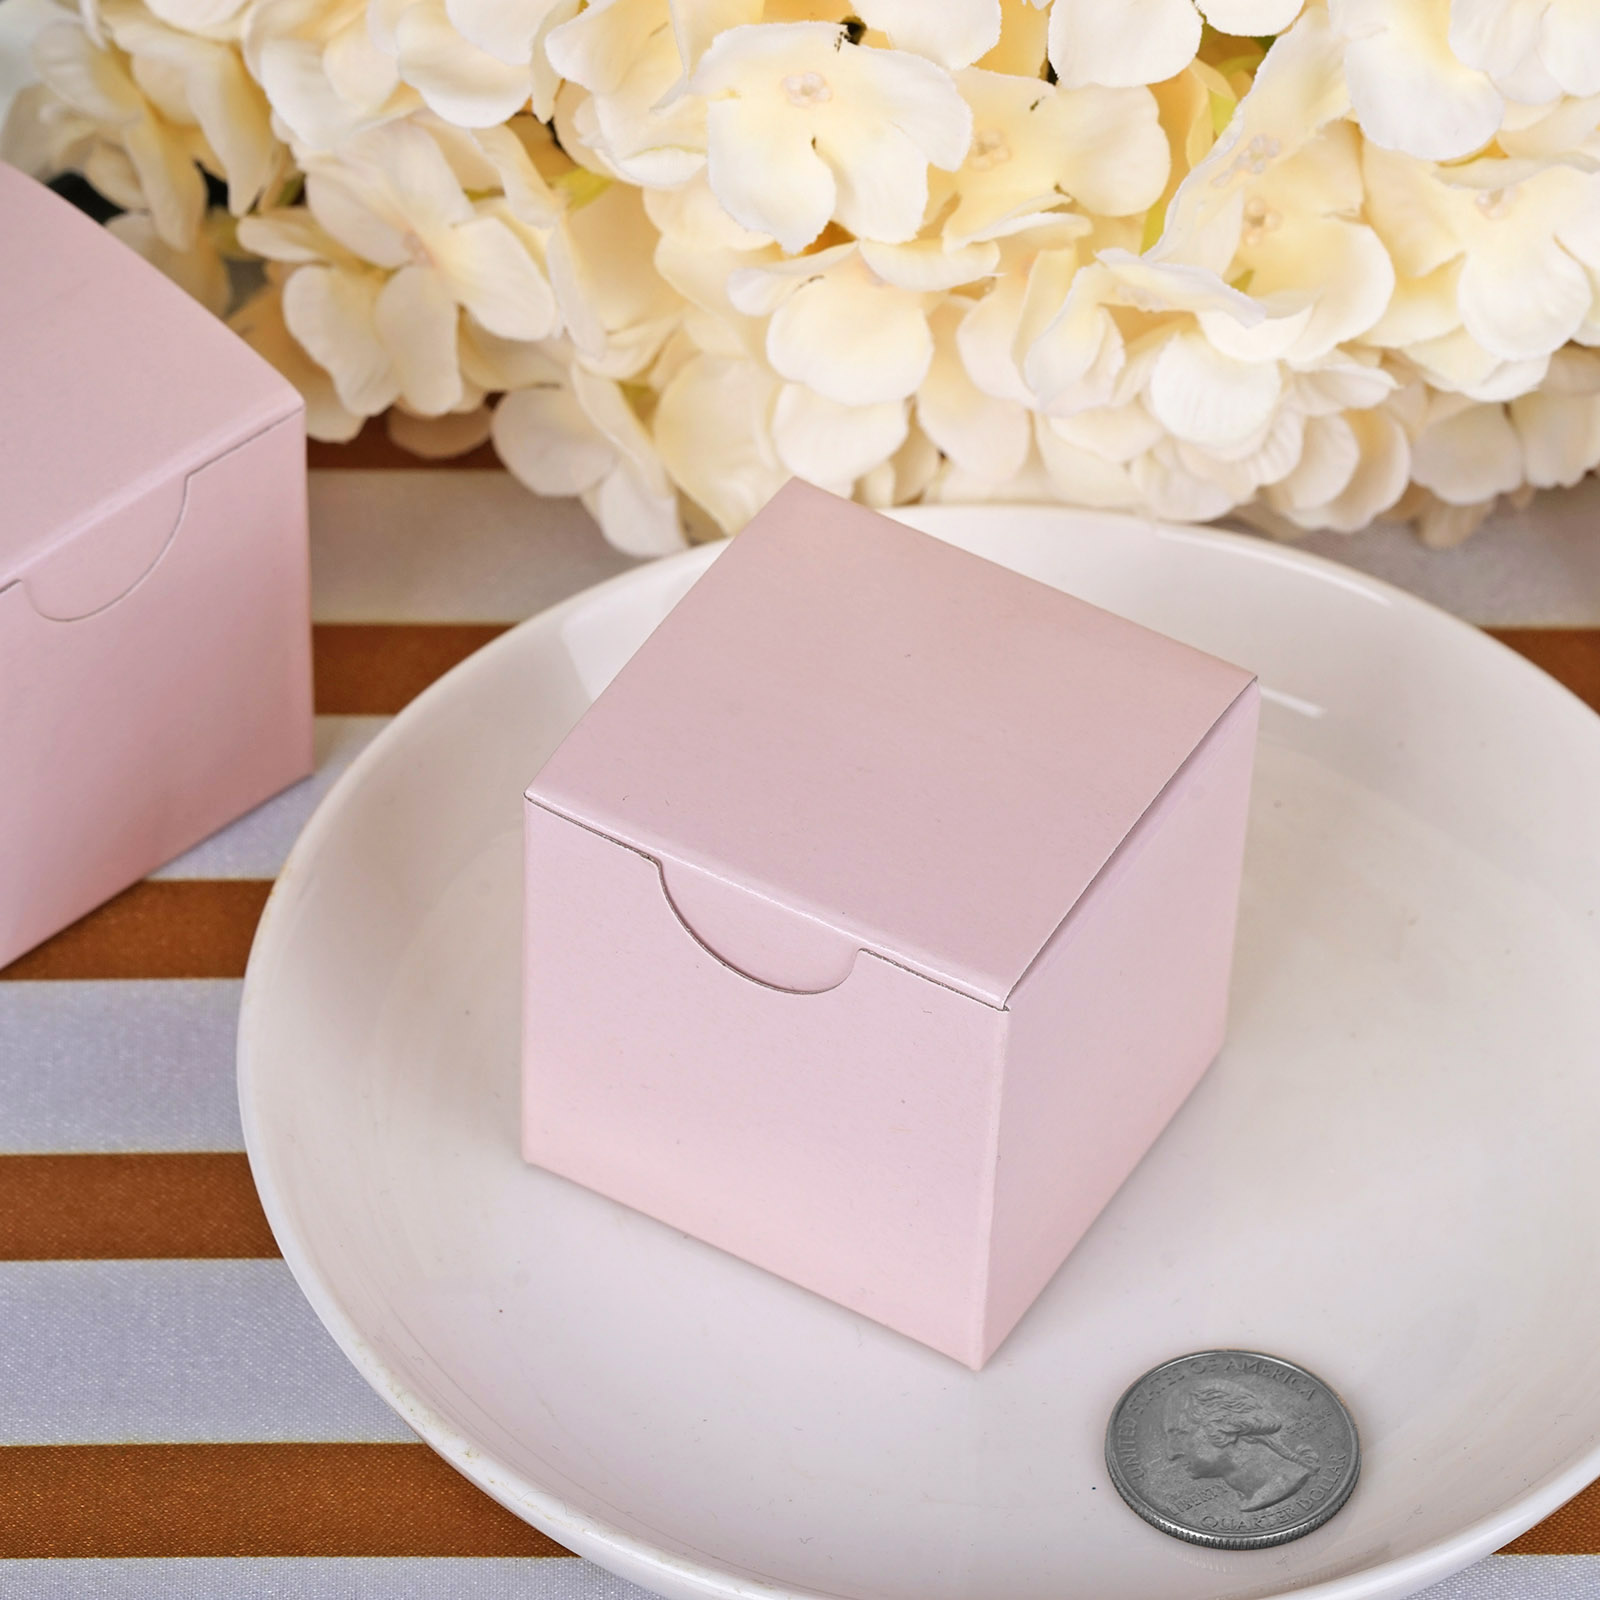 """100 pcs Silver FAVOR BOXES 2/""""x2/"""" Wedding Party Home Decorations GIFT Supply SALE"""